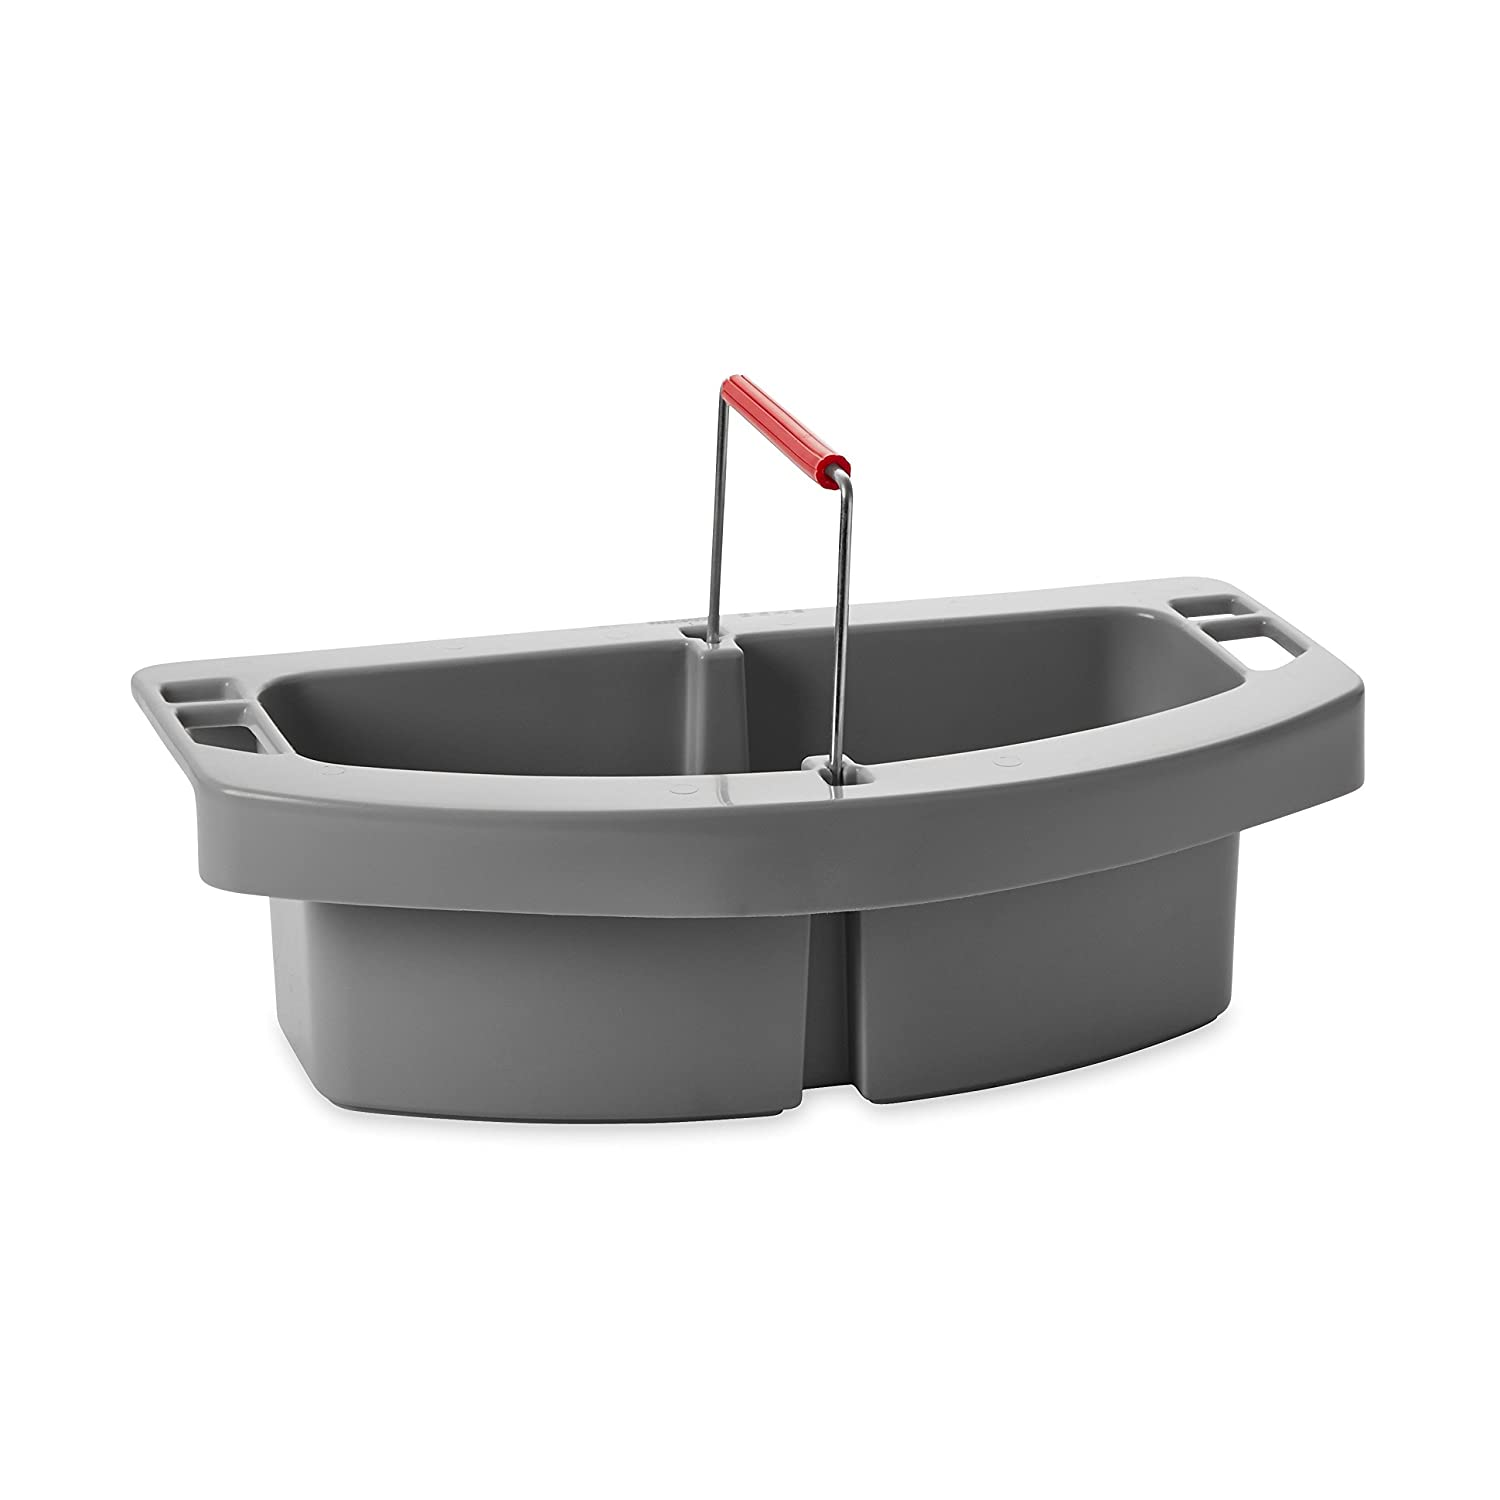 Rubbermaid Commercial BRUTE Maid Caddy for BRUTE Containers, Gray (FG264900GRAY)